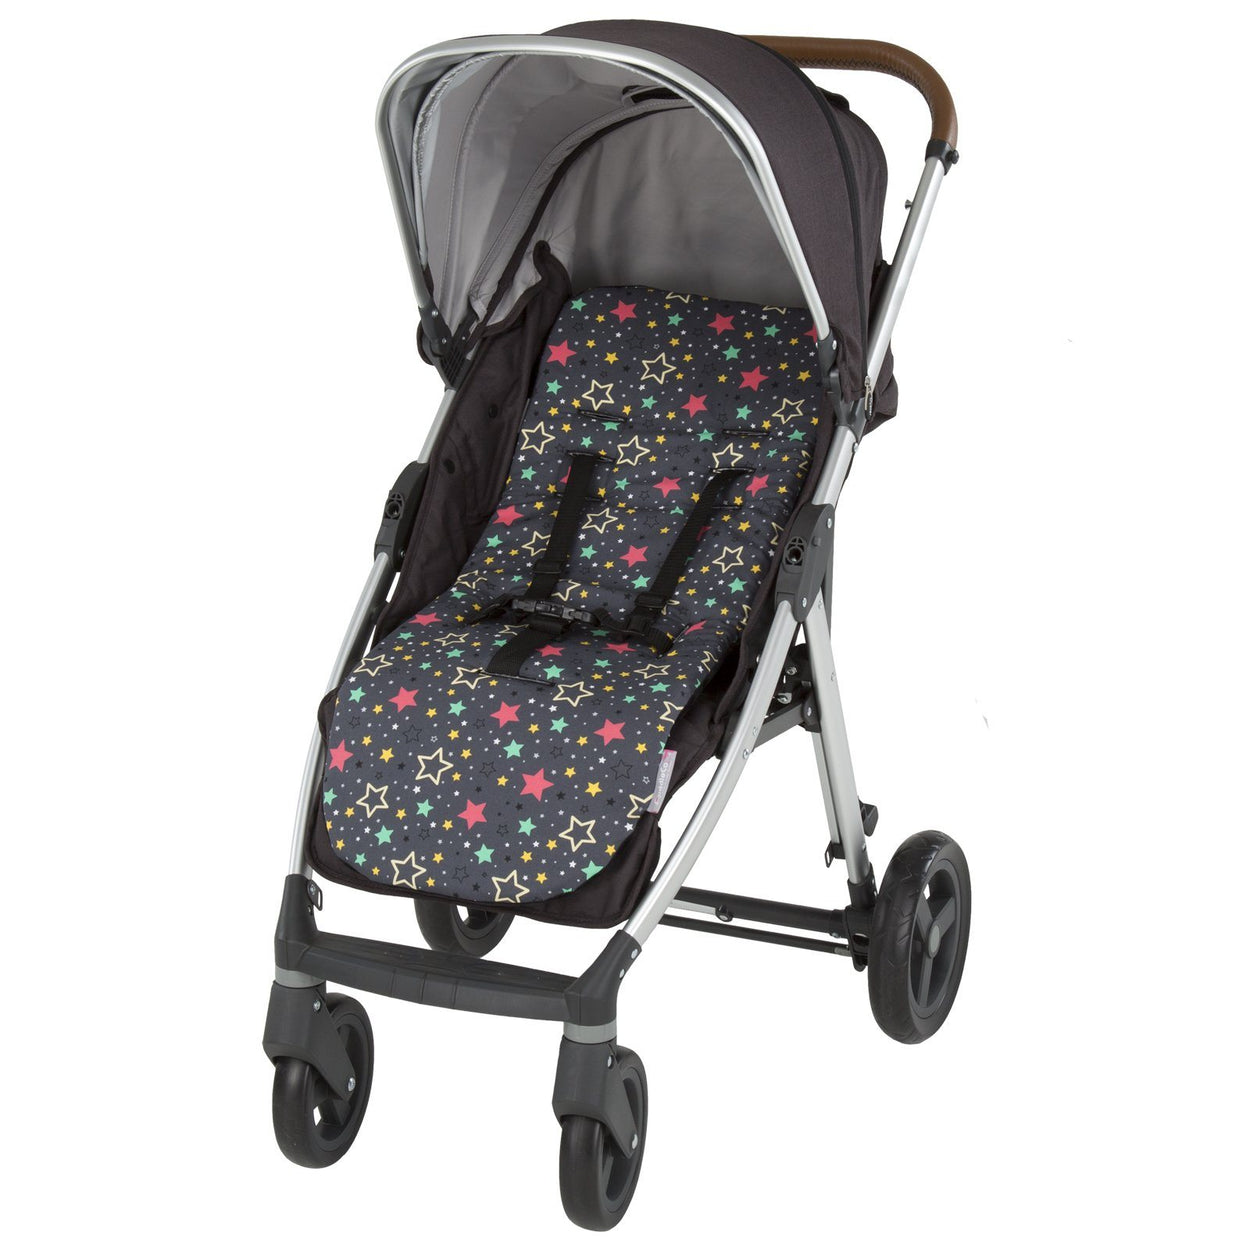 Comfi-Cush Memory Foam Stroller Liner- Star Bright On The Go cuddleco